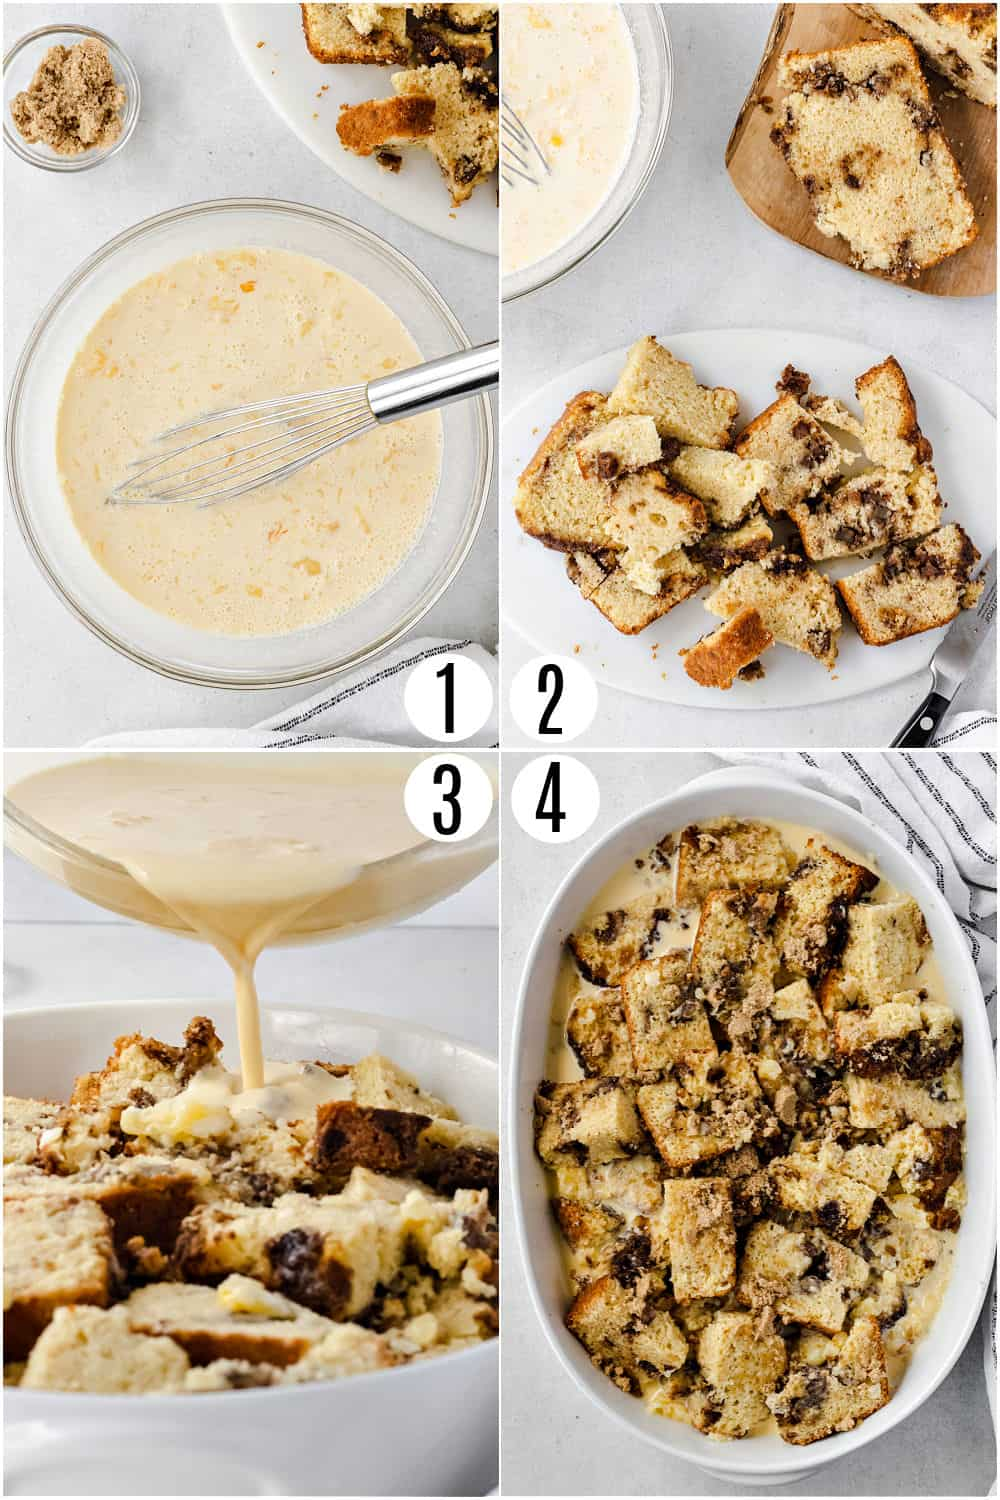 Step by step photos showing how to make apple bread pudding.